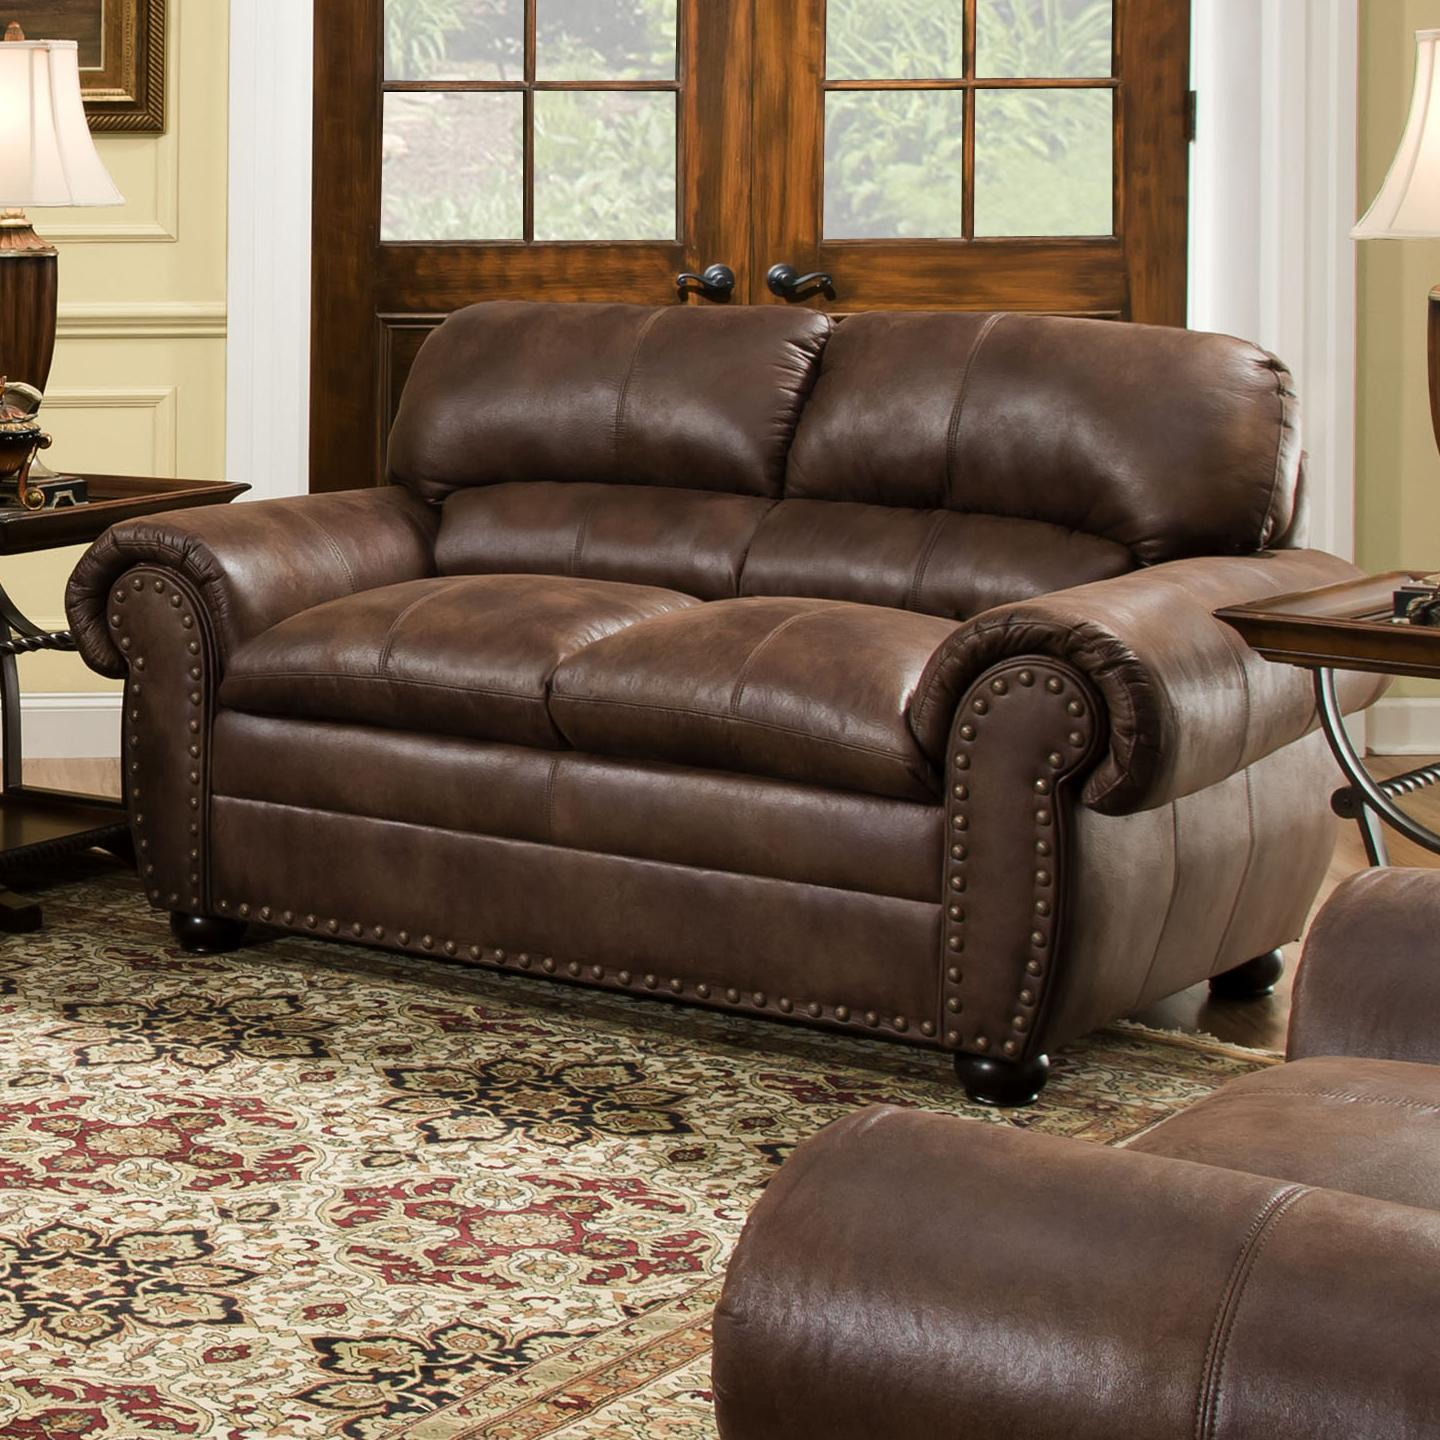 Simmons Upholstery 7510 Casual Loveseat - Item Number: 7510-Loveseat-Espresso